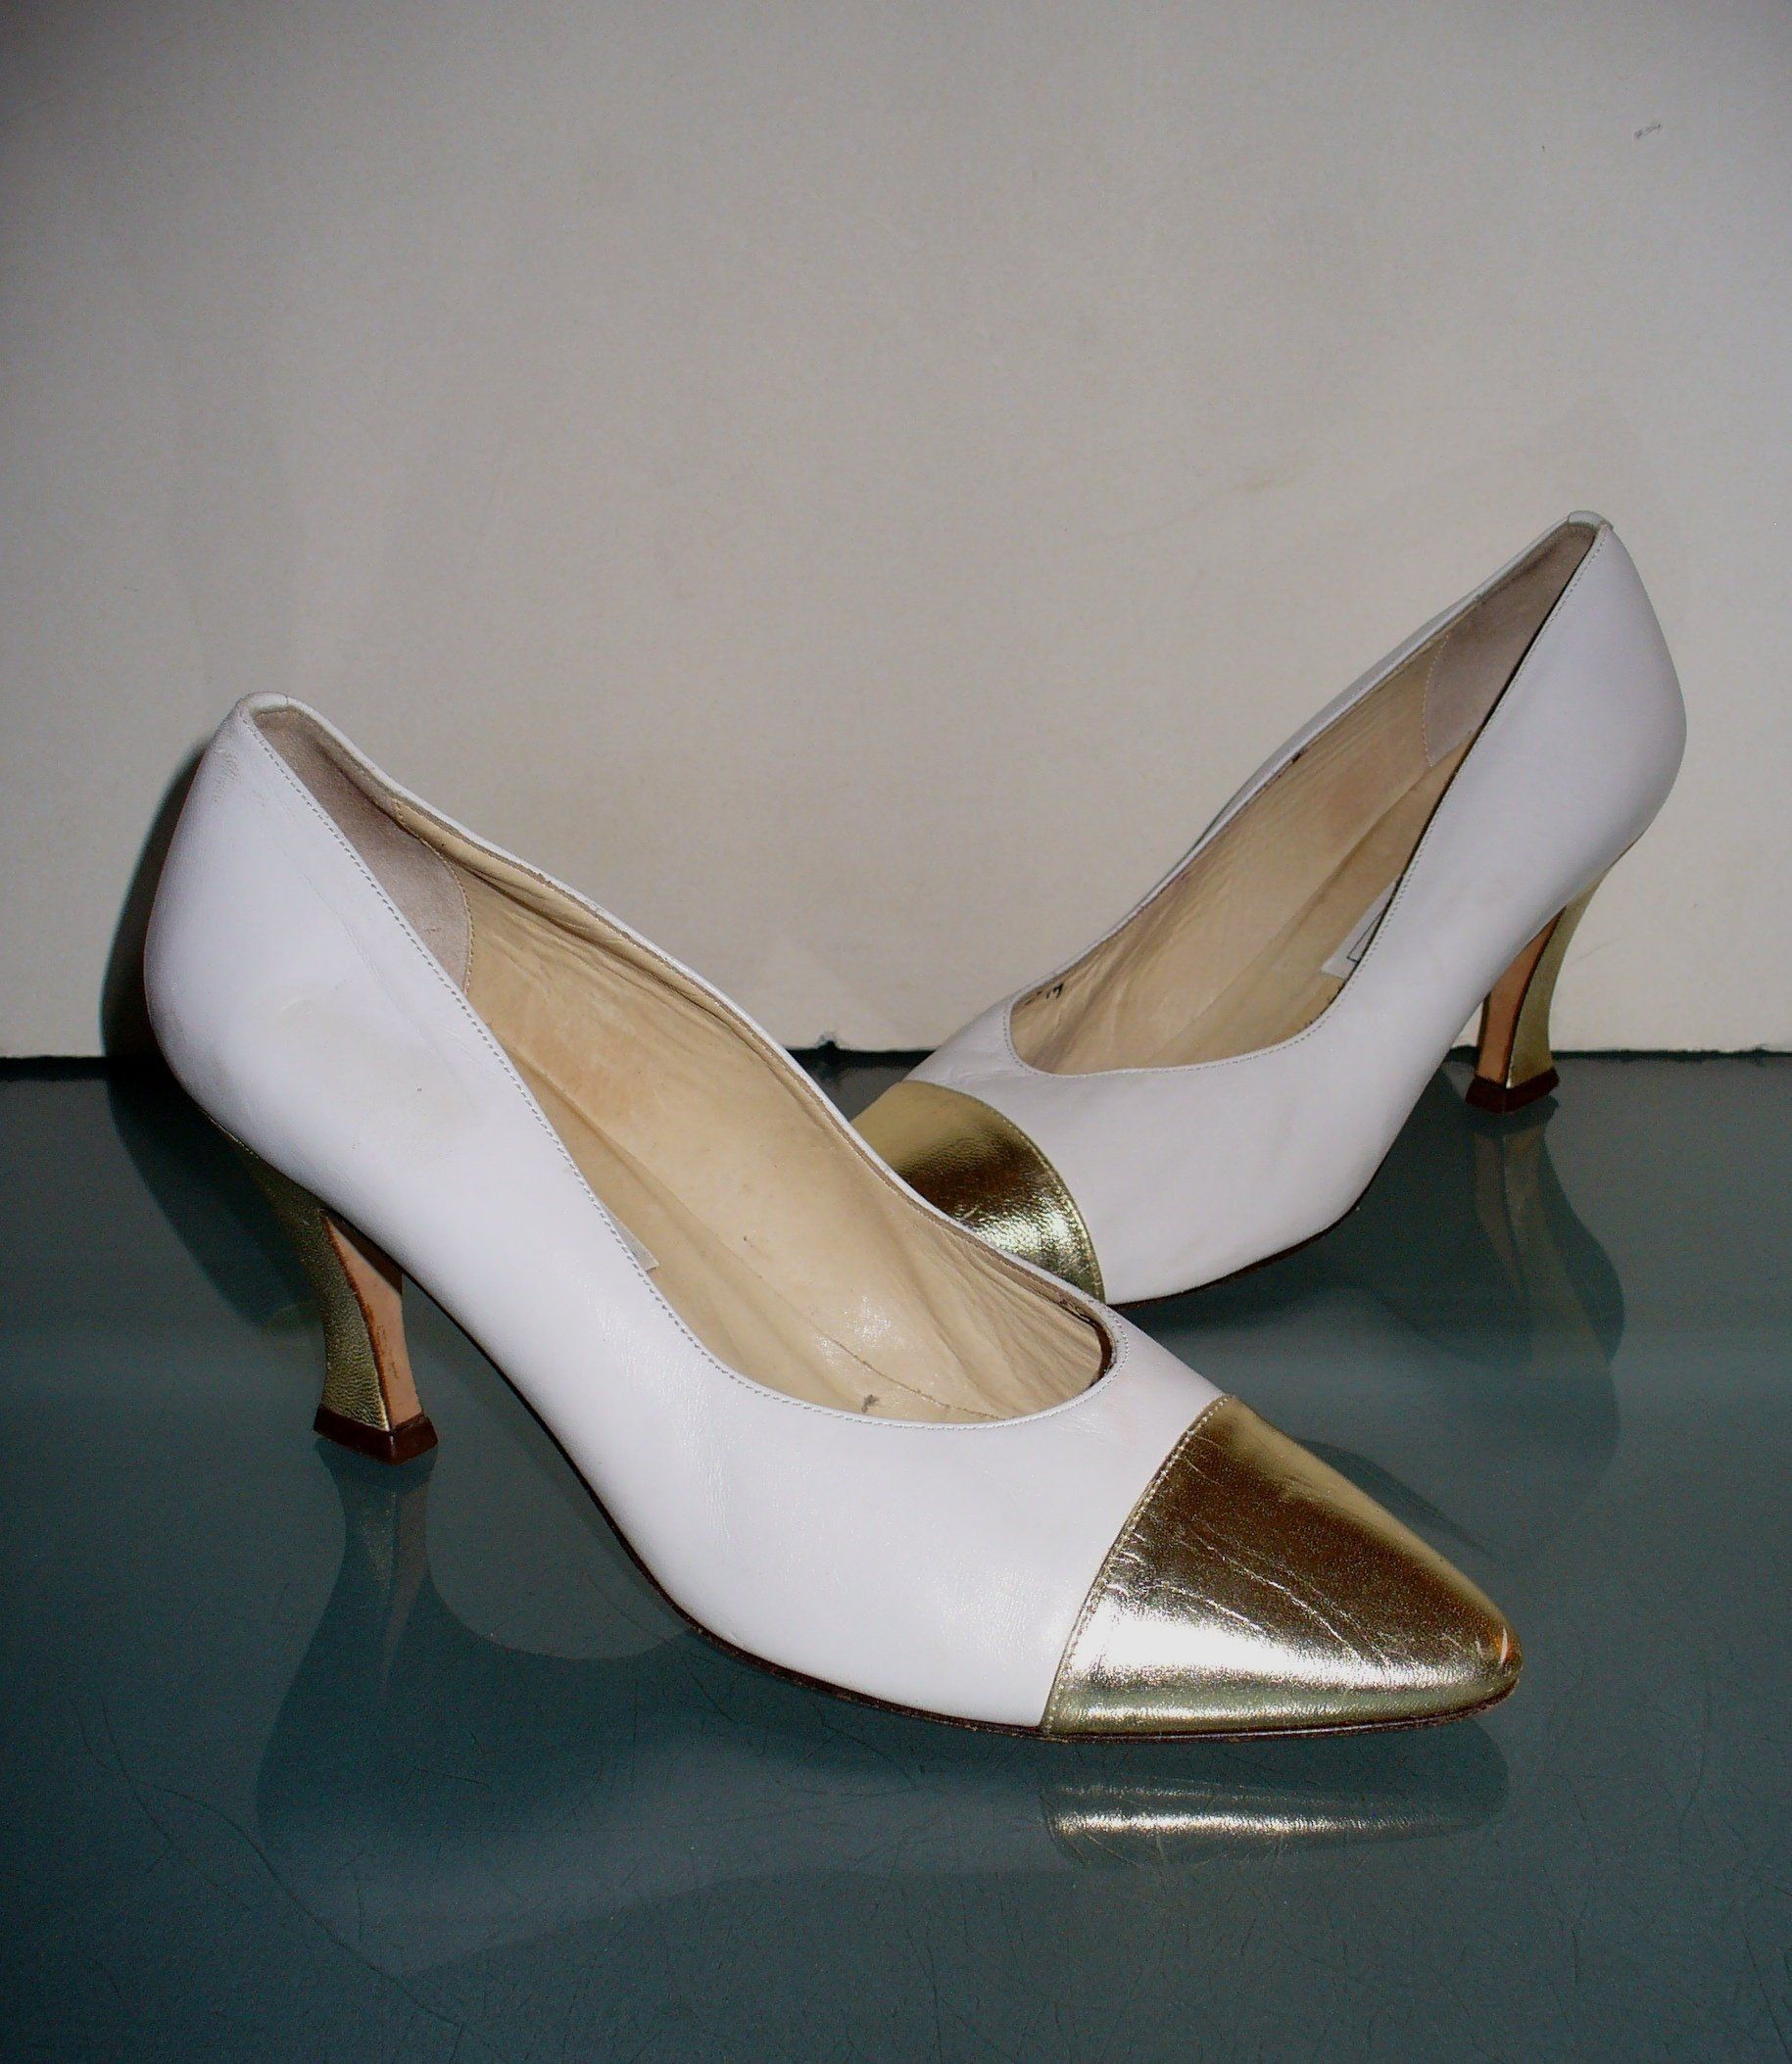 Bridal Shoes Saks: Saks Fifth Avenue Made In Italy White & Gold Pumps Size 7